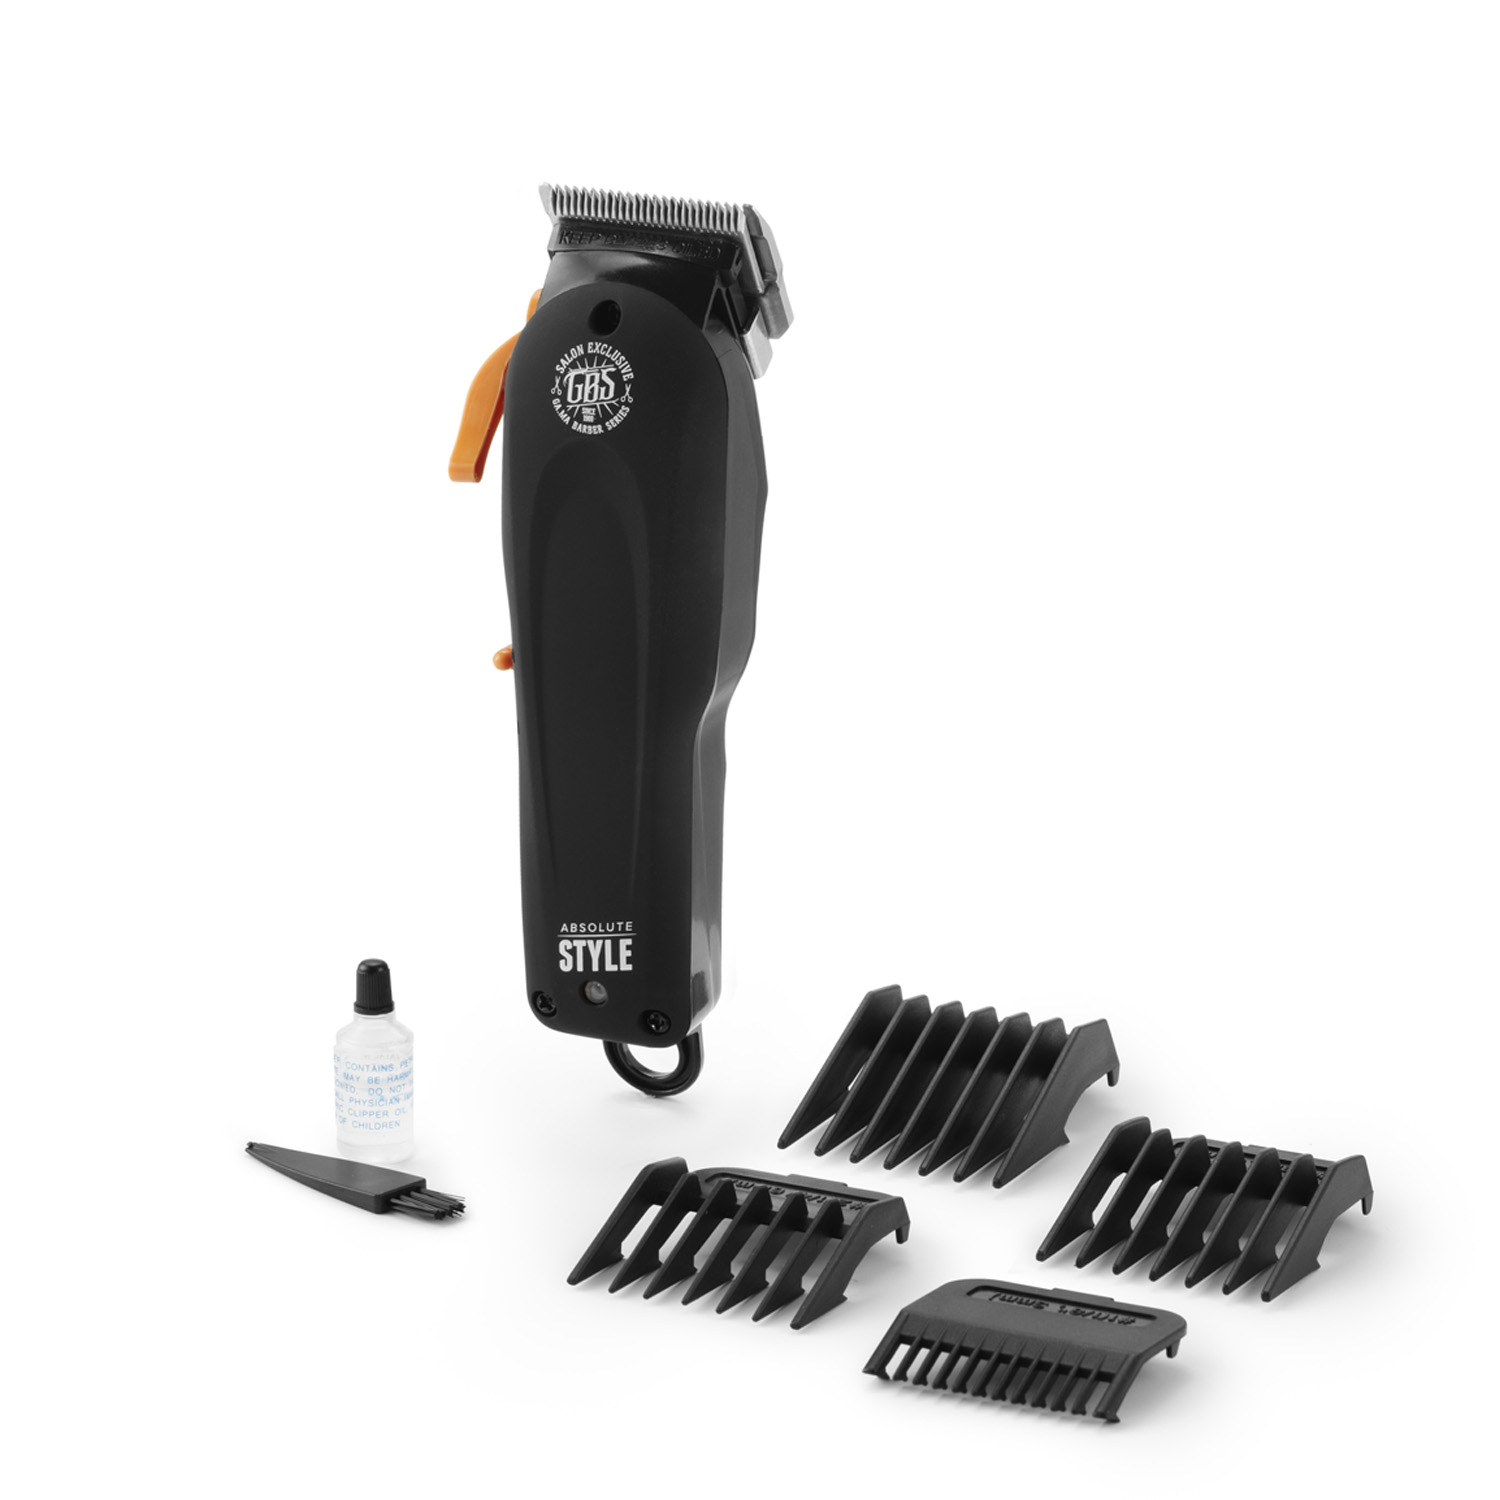 GBS Absolute Style Cordless Clipper